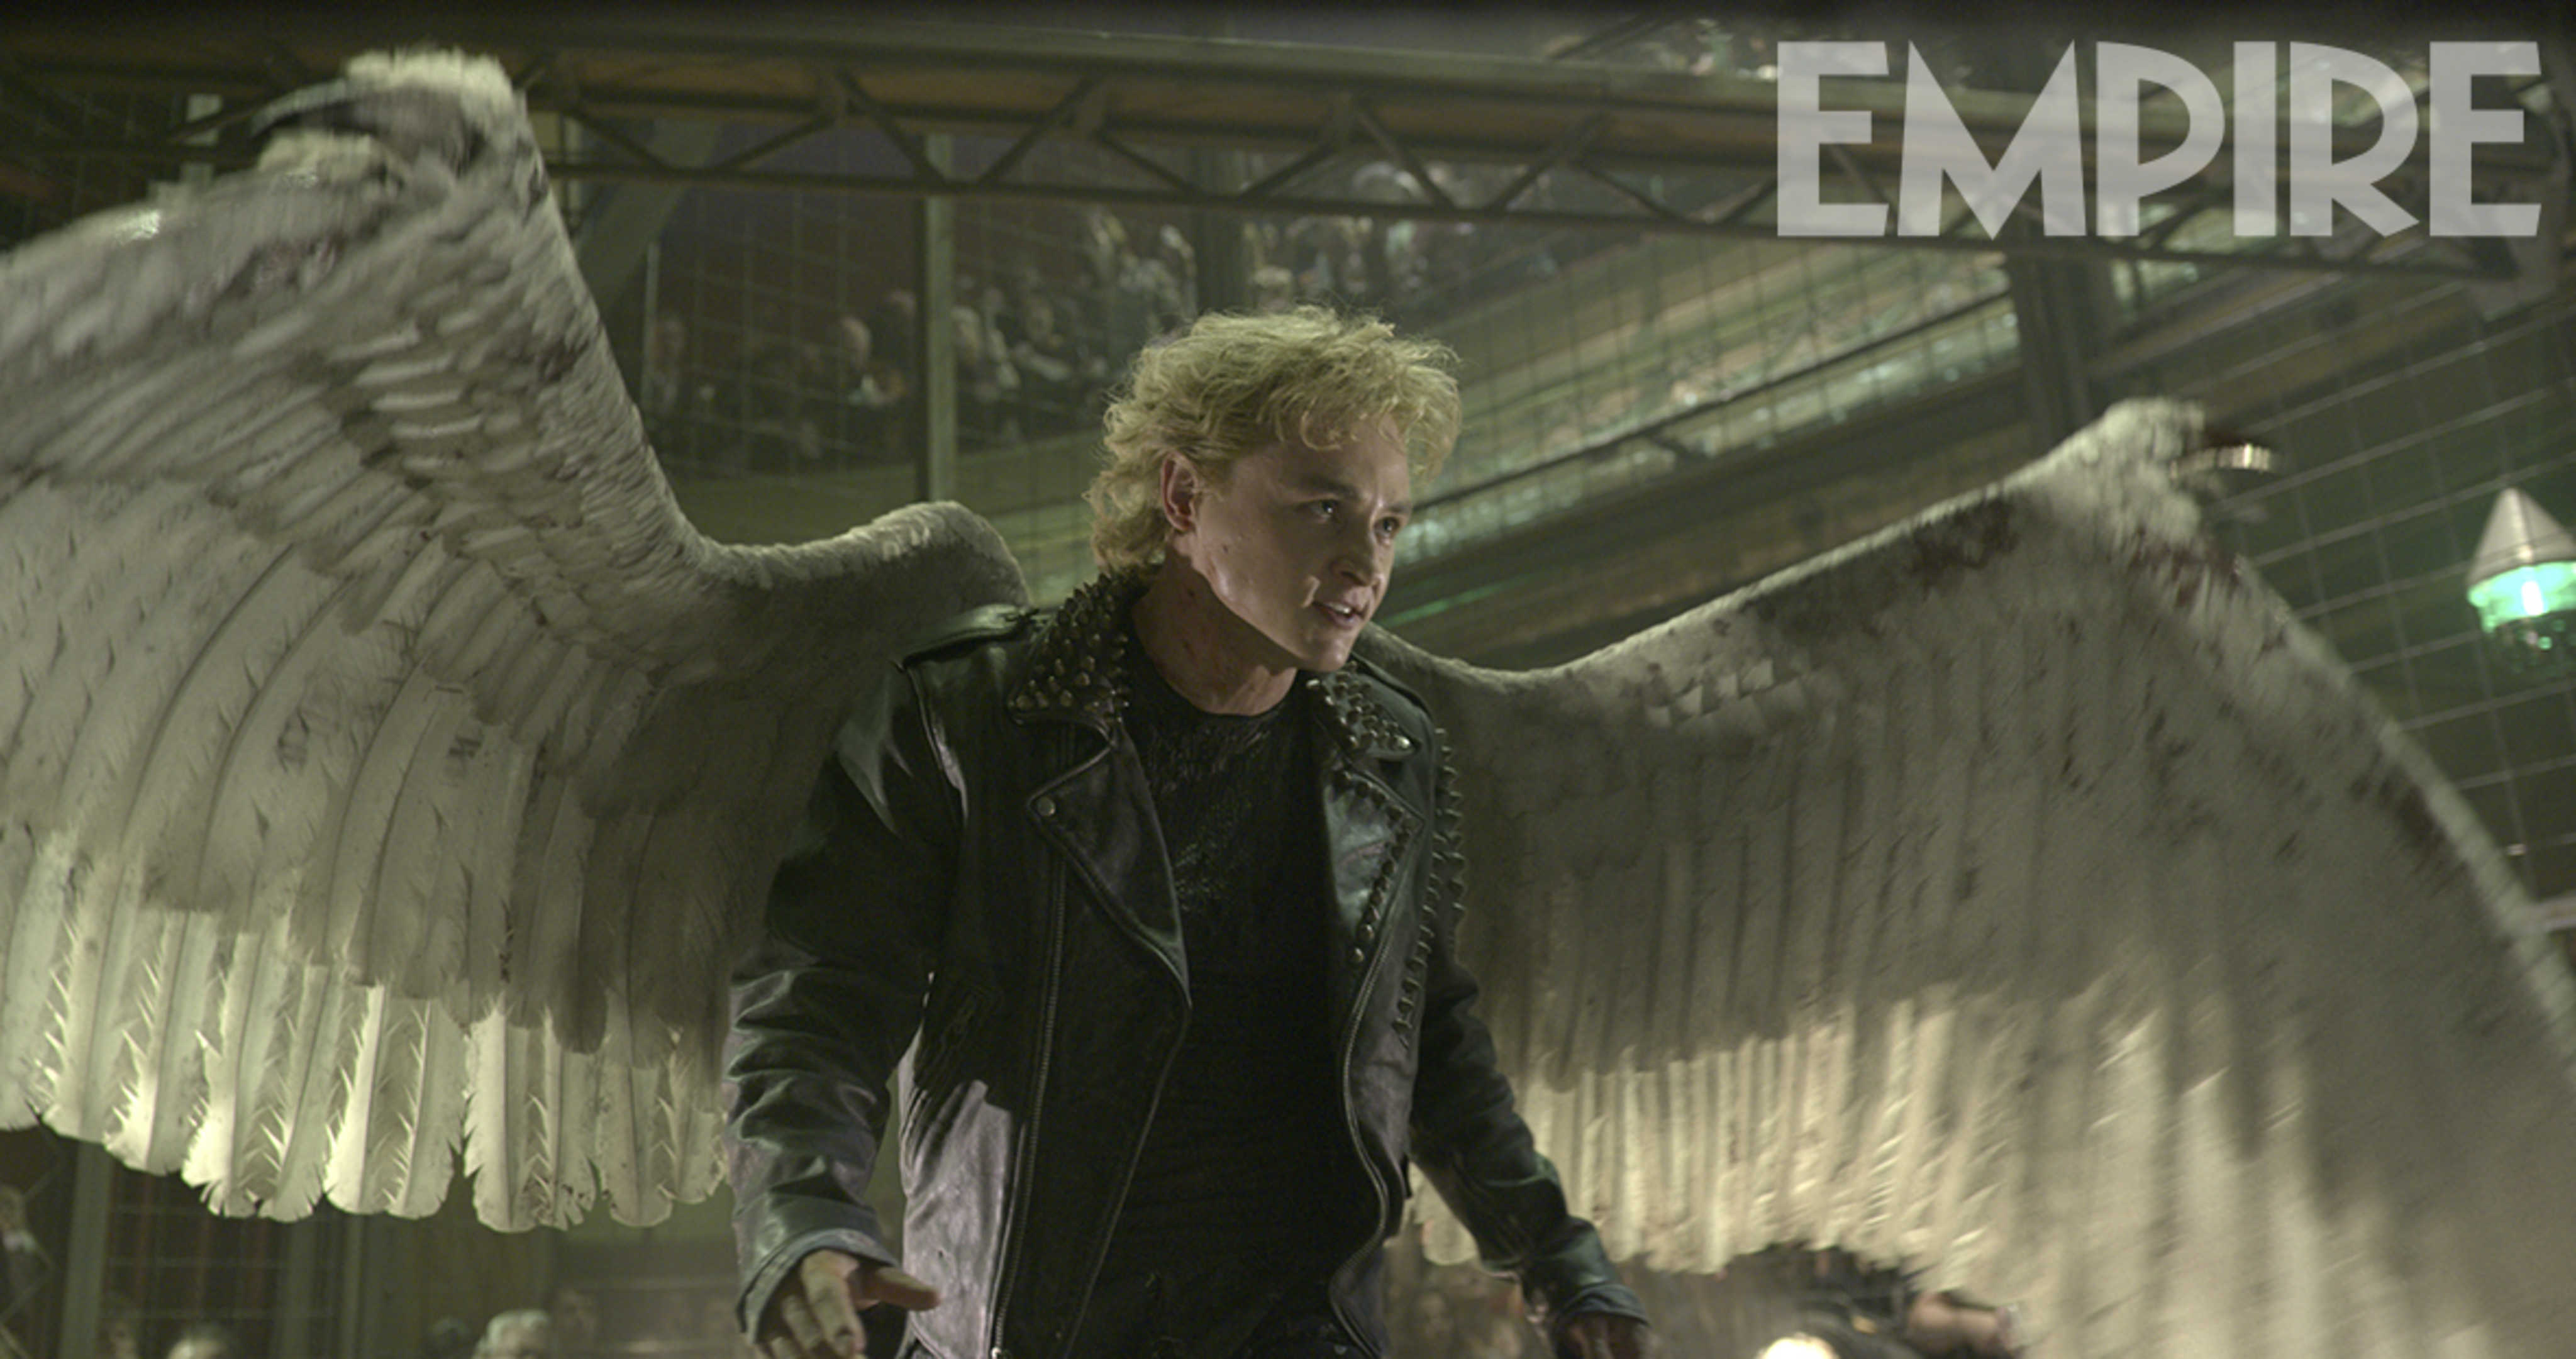 X Men Apocalypse Quicksilver Photo V Energy Drink furthermore Lesbian Scene Analysis Black Swan additionally G 6m5qgh3c1b9gl4r90kmk3a0 in addition 40 Unforgivable Plot Holes In Star Wars The Force Awakens b 8850324 likewise 21904 Ridiculousness Chris Cole. on oscar isaac kiss scene